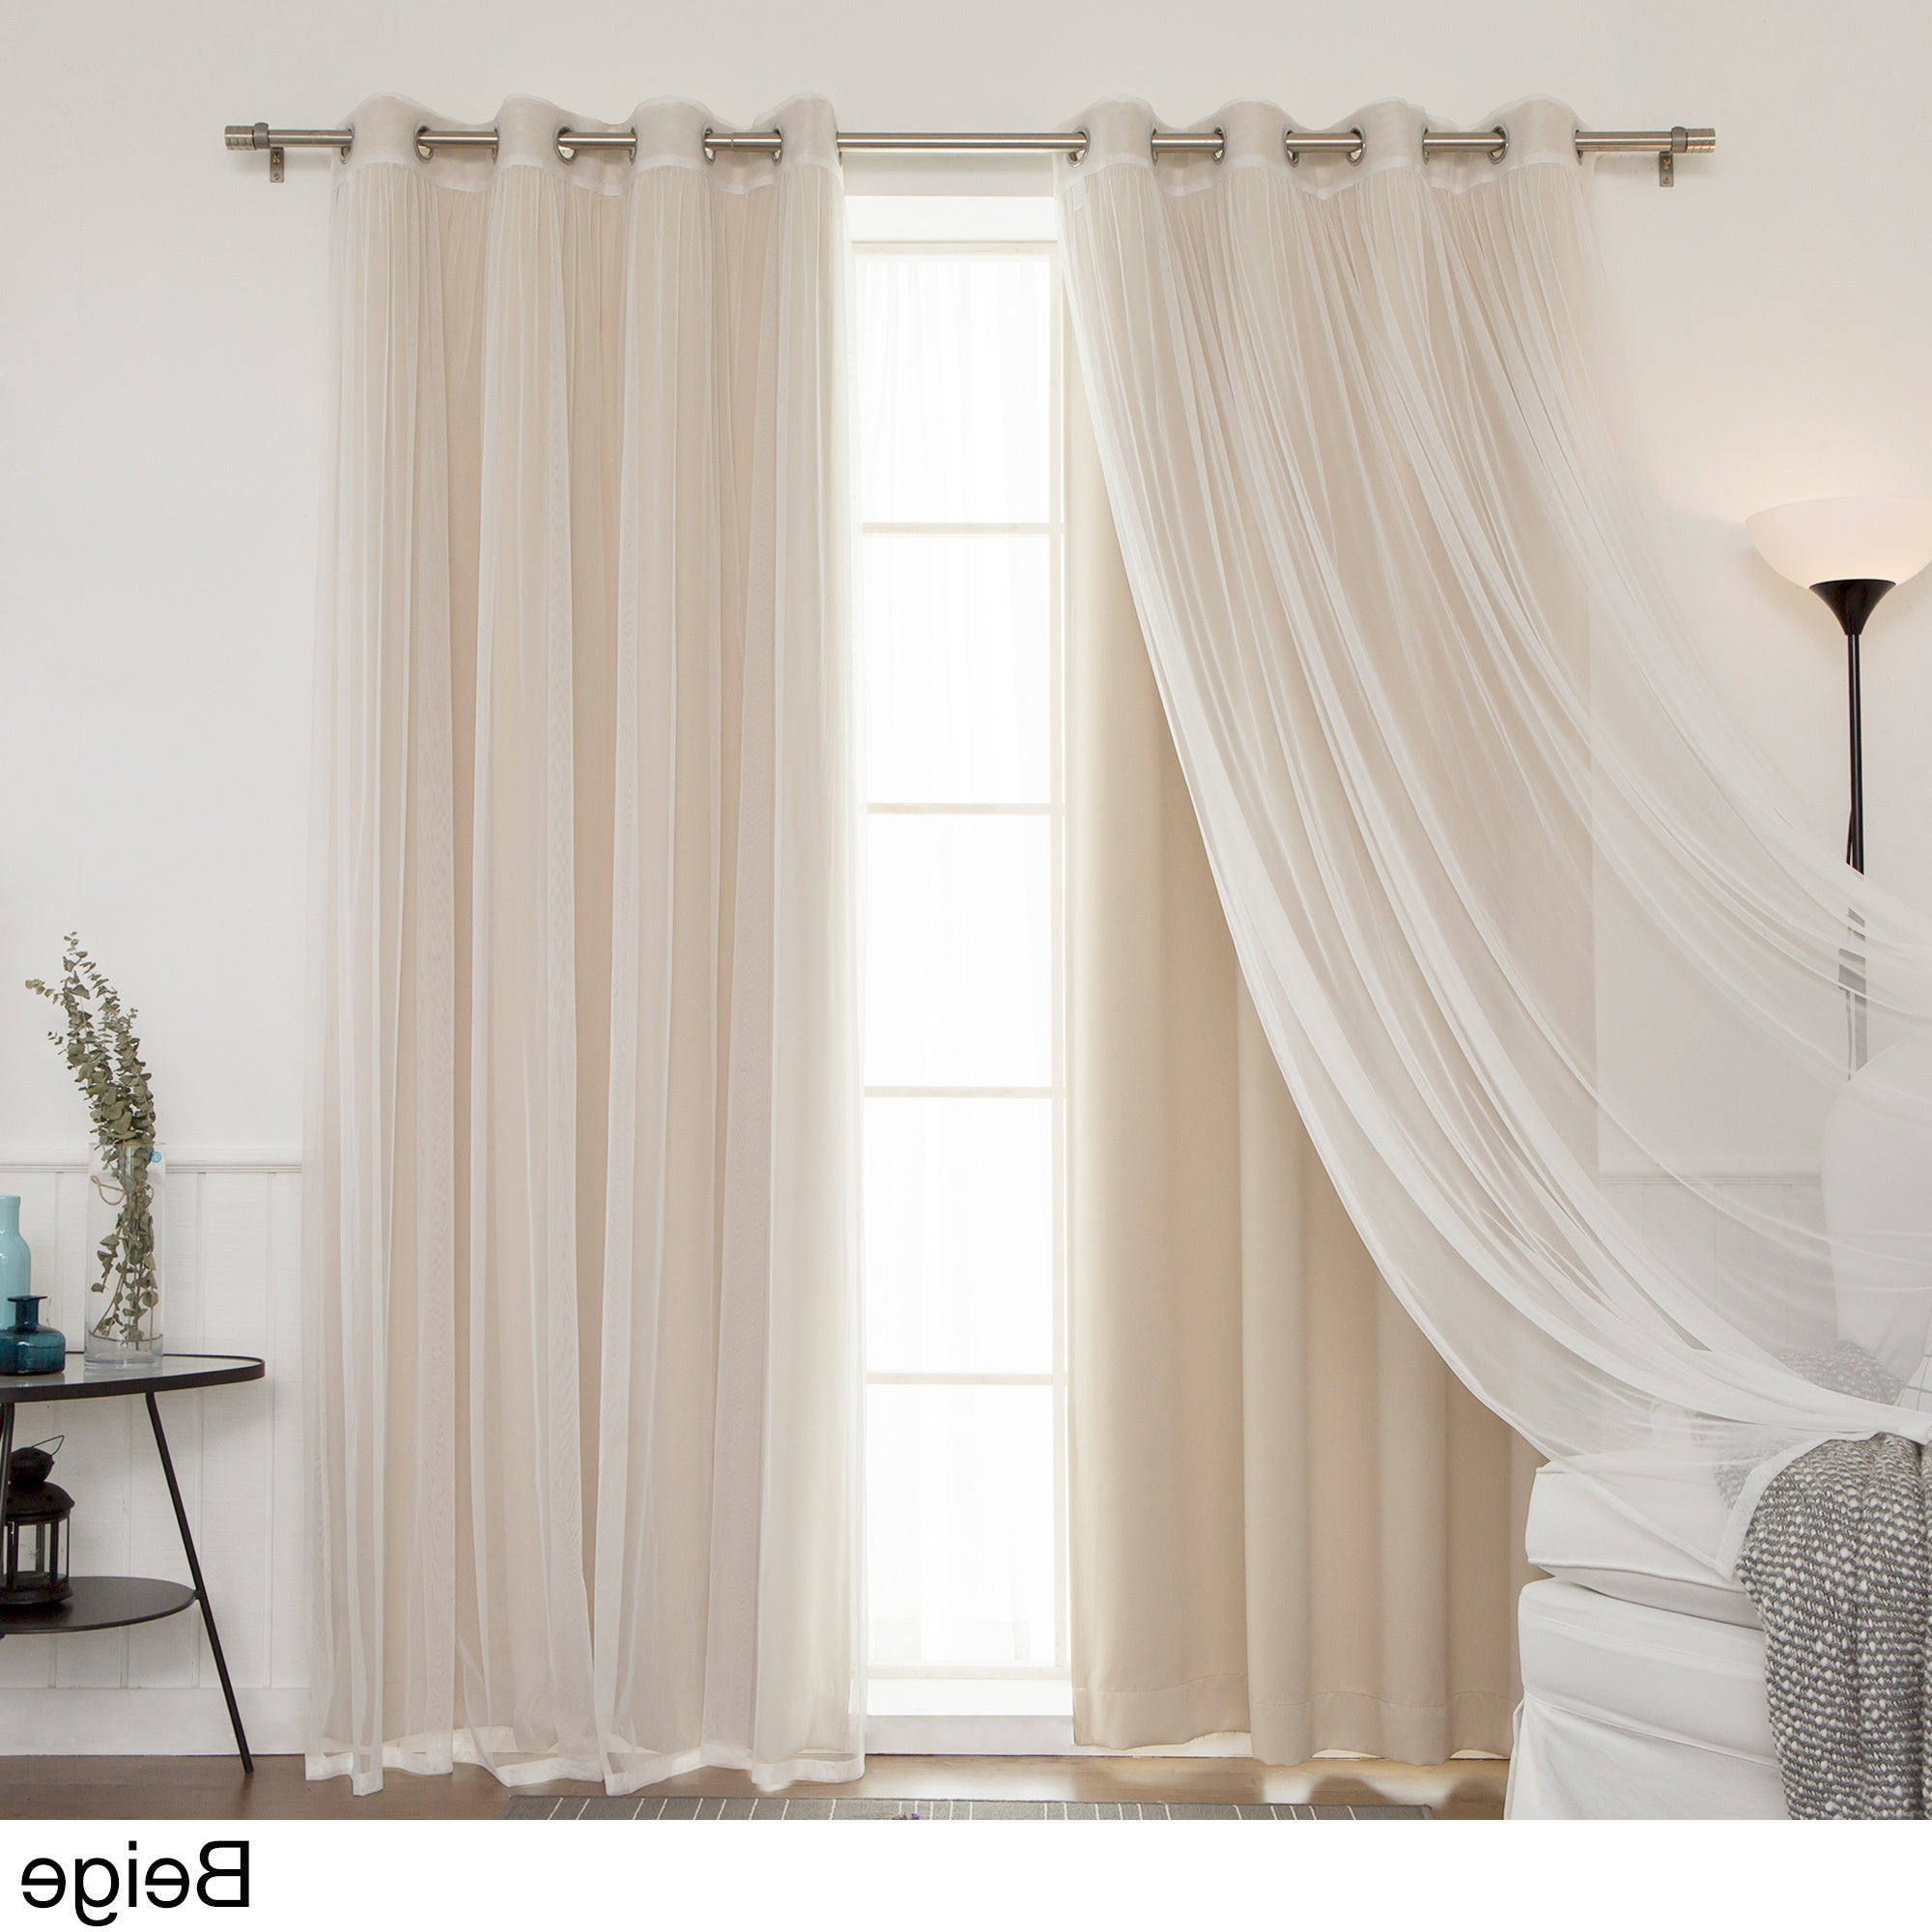 Aurora Home Mix And Match Blackout Tulle Lace Sheer 4 Piece Curtain Panel Set Inside Widely Used Mix And Match Blackout Tulle Lace Sheer Curtain Panel Sets (View 2 of 20)